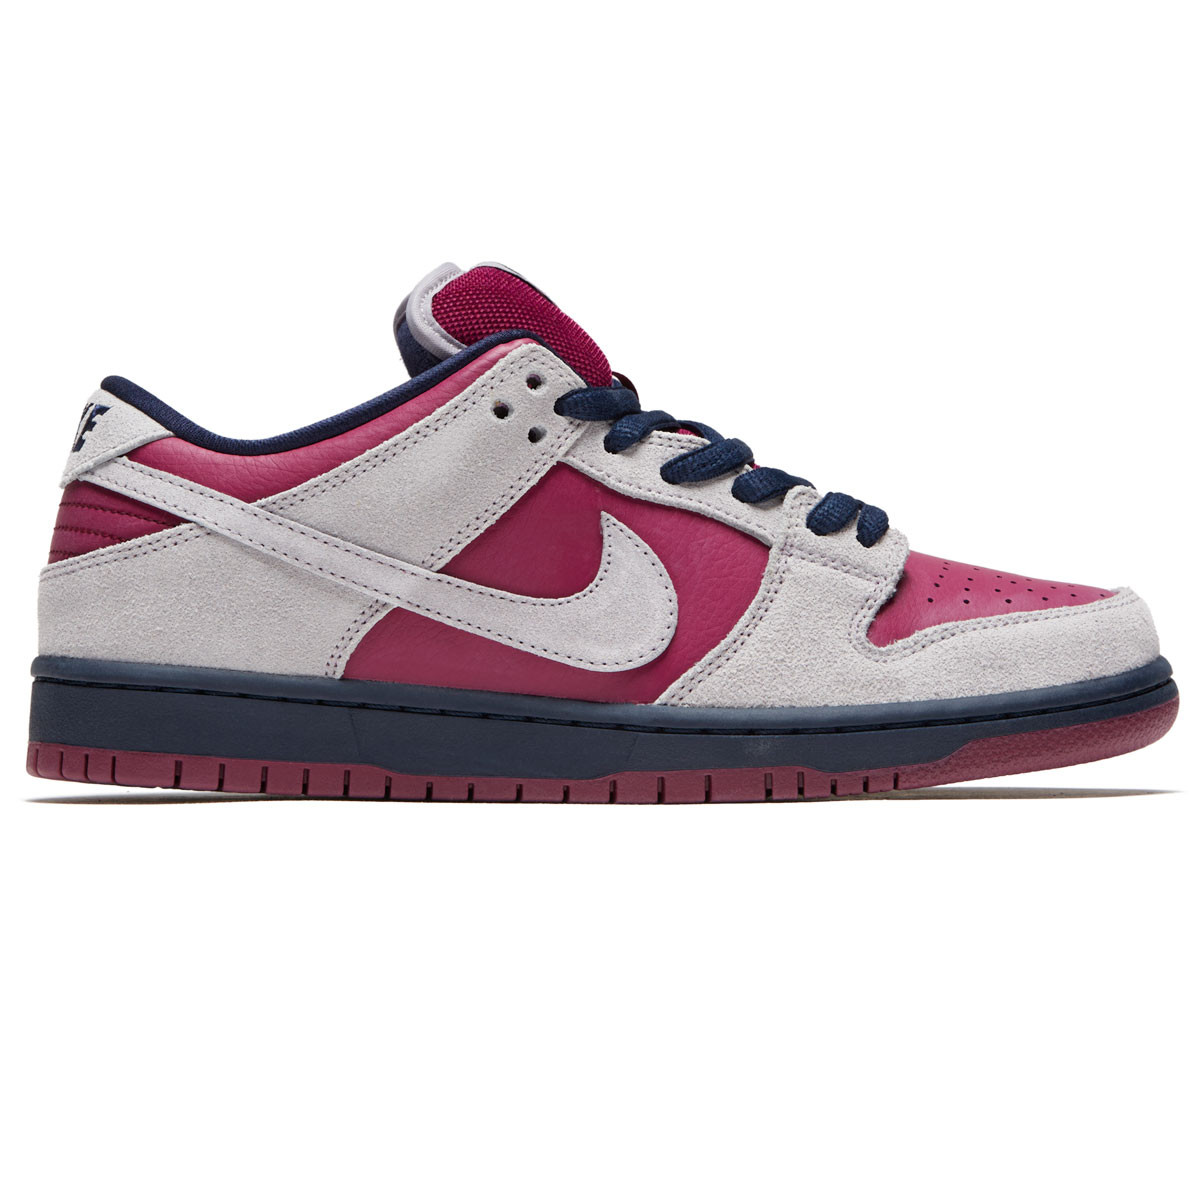 new styles 40363 a1af5 Nike SB Dunk Low Pro Shoes - Atmosphere GreyAtmosphere Grey - 6.0